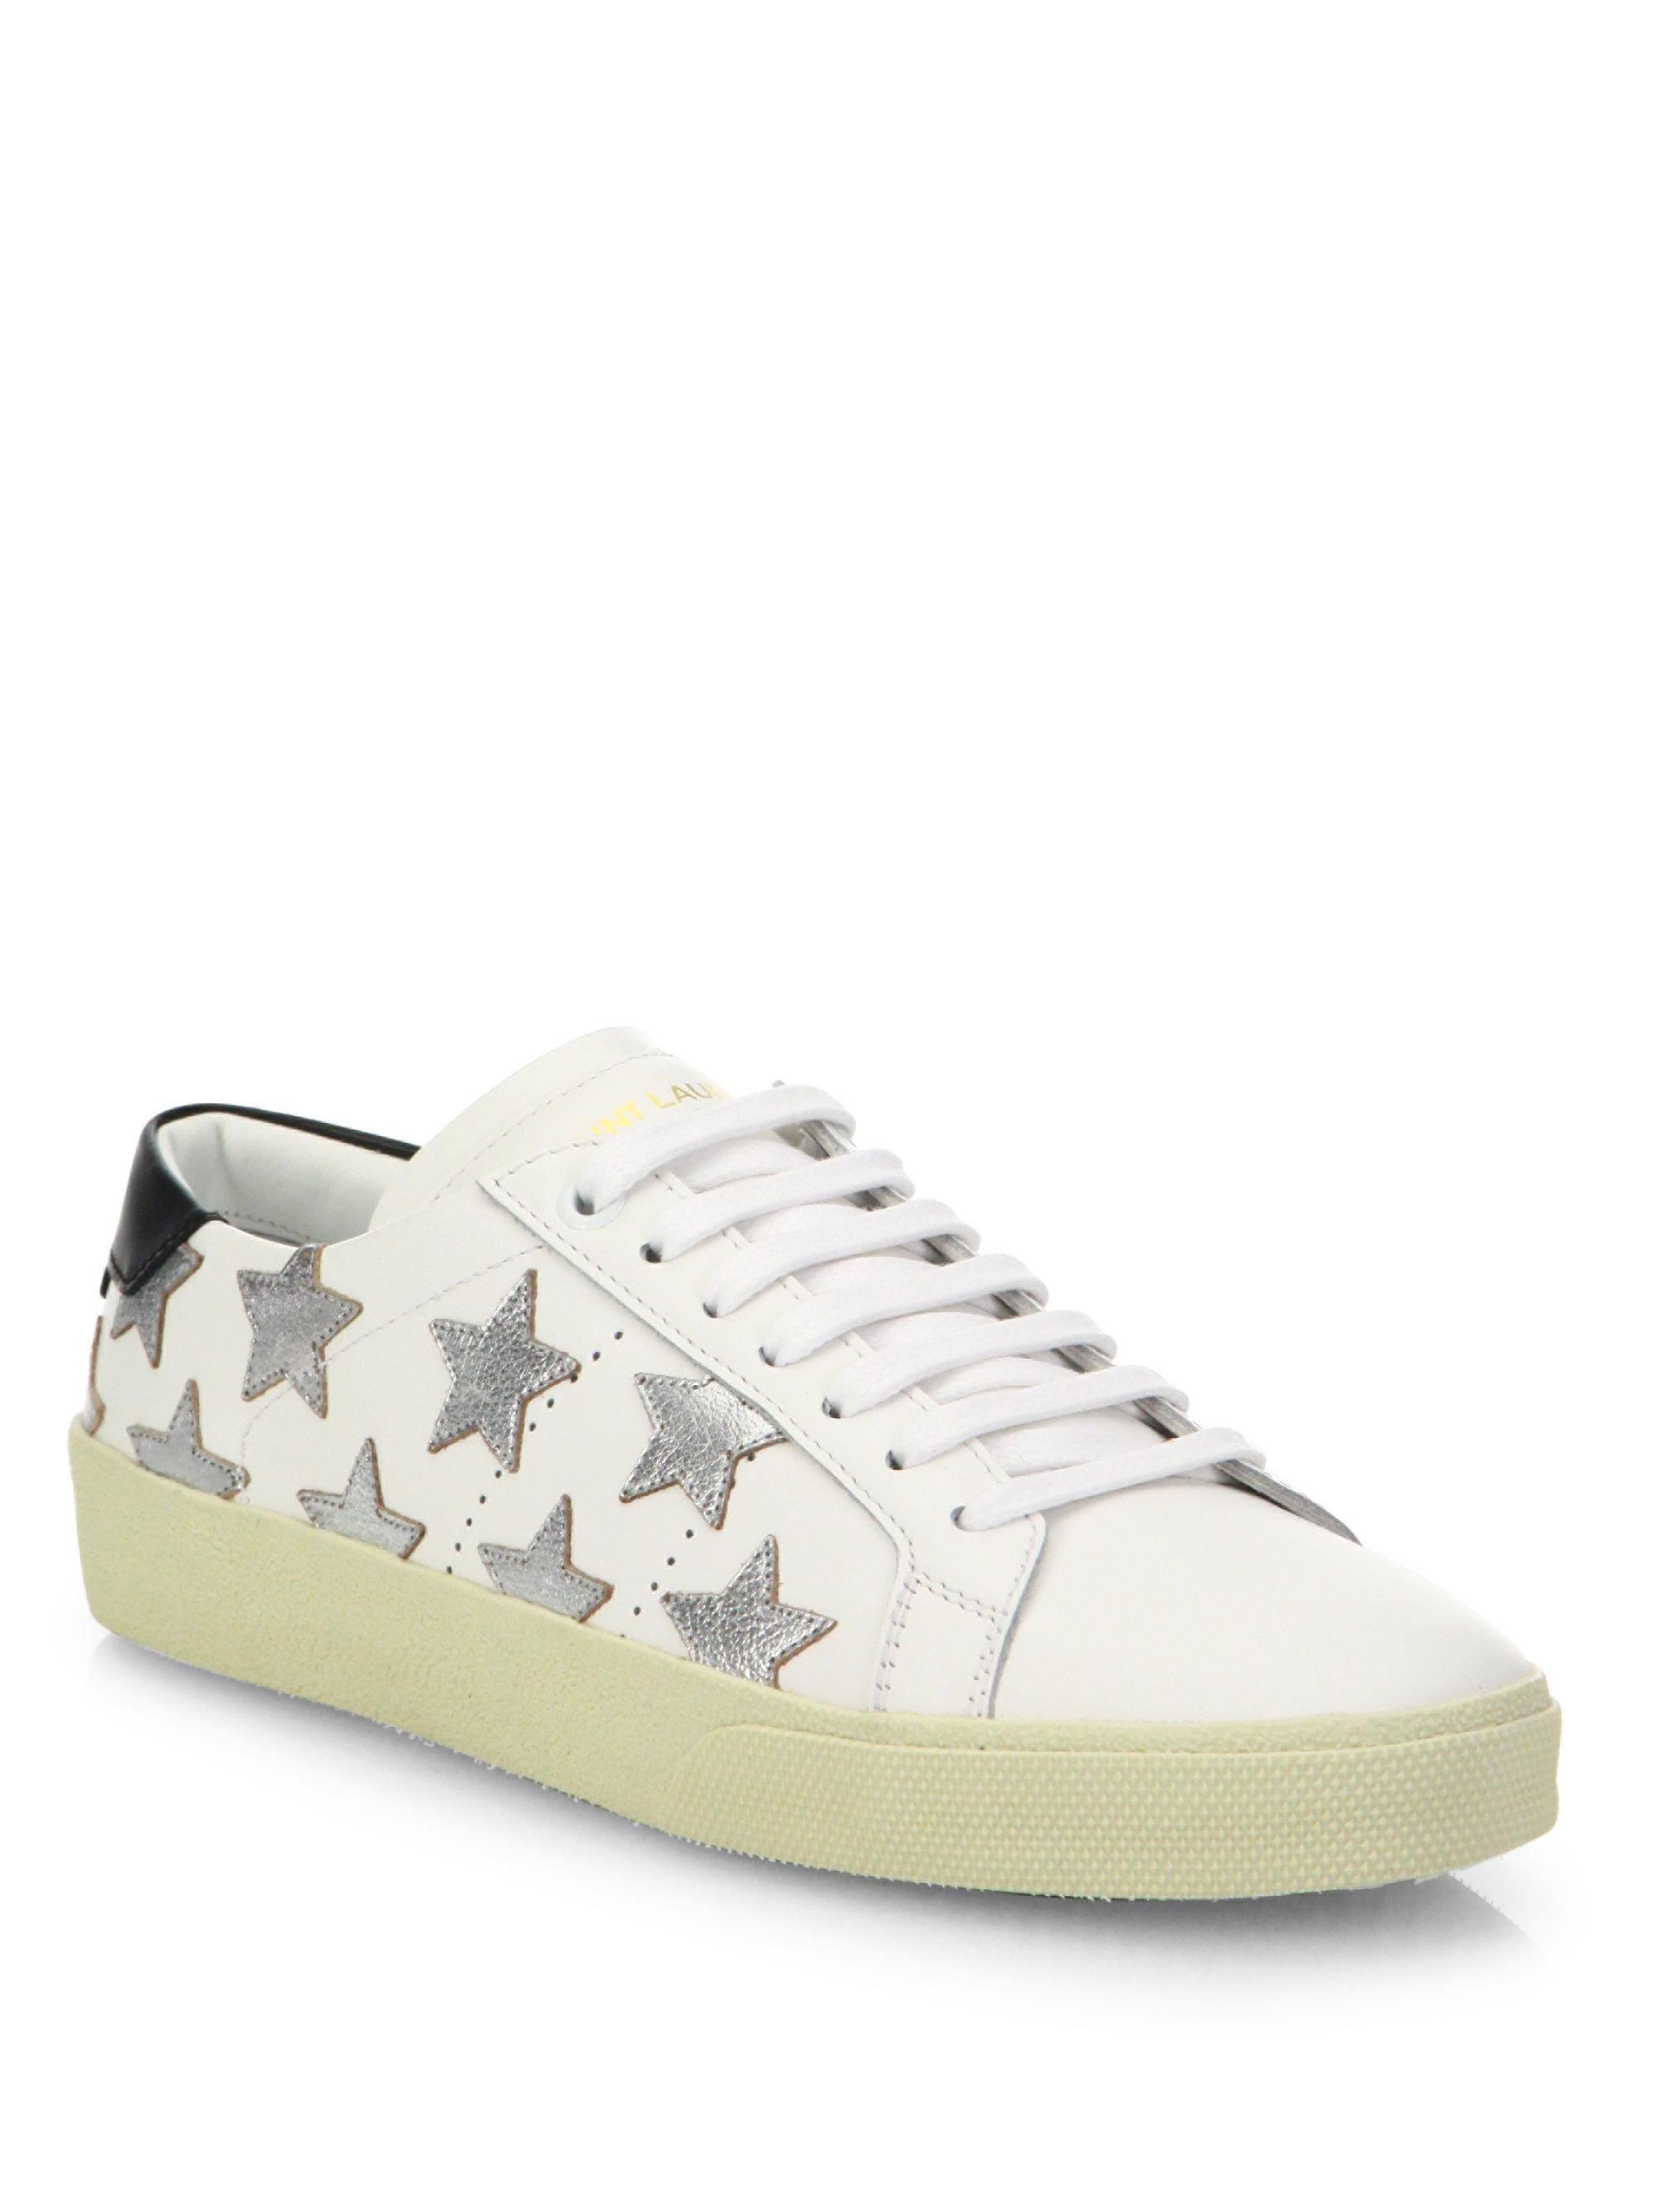 Isabel Marant White & Silver Court Classic California Sneakers ACIzwC